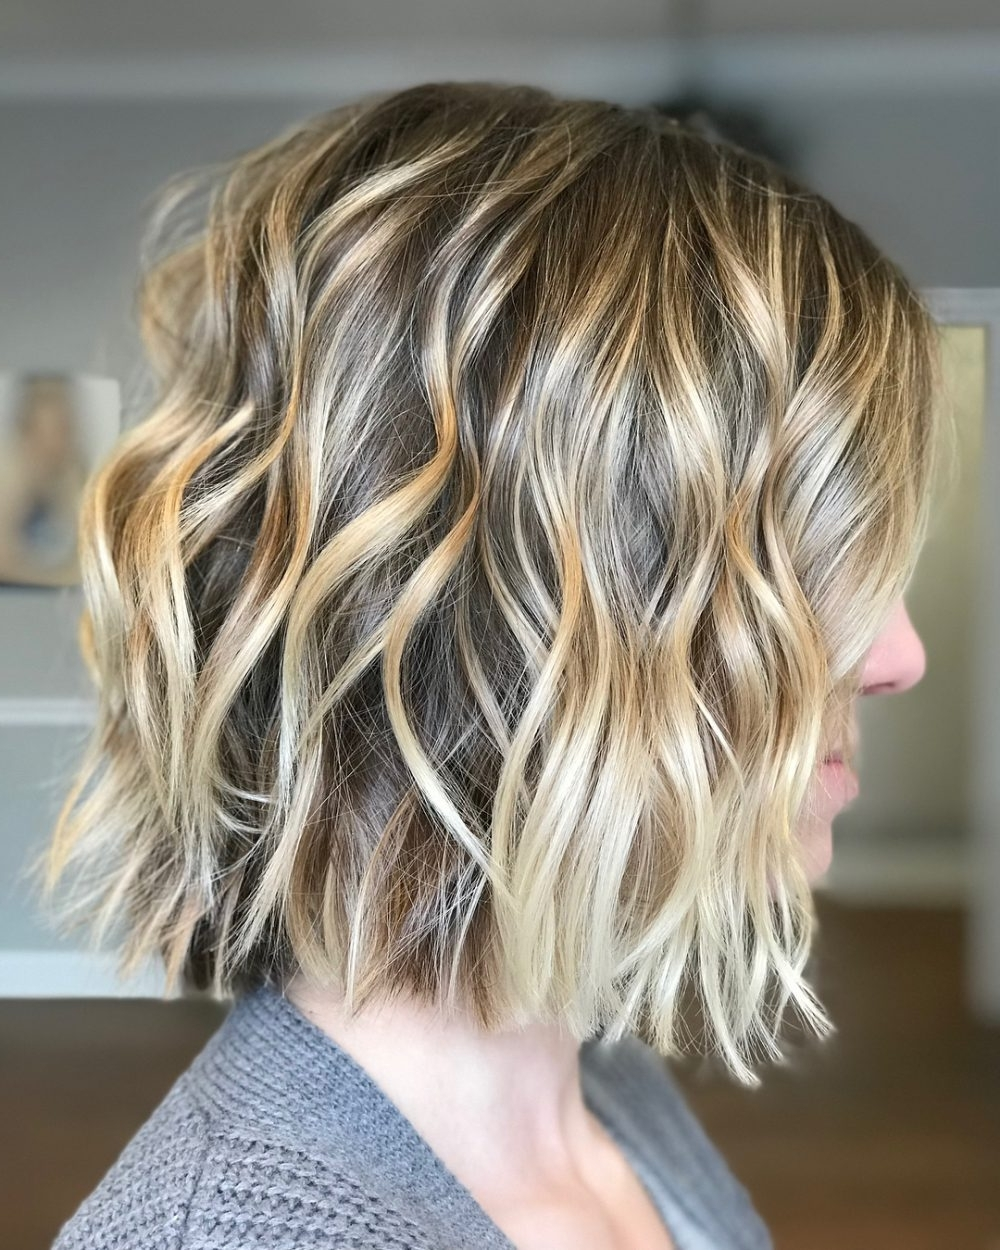 Top 20 Choppy Hairstyles You'Ll See In 2021 Medium Chunky Hairstyles